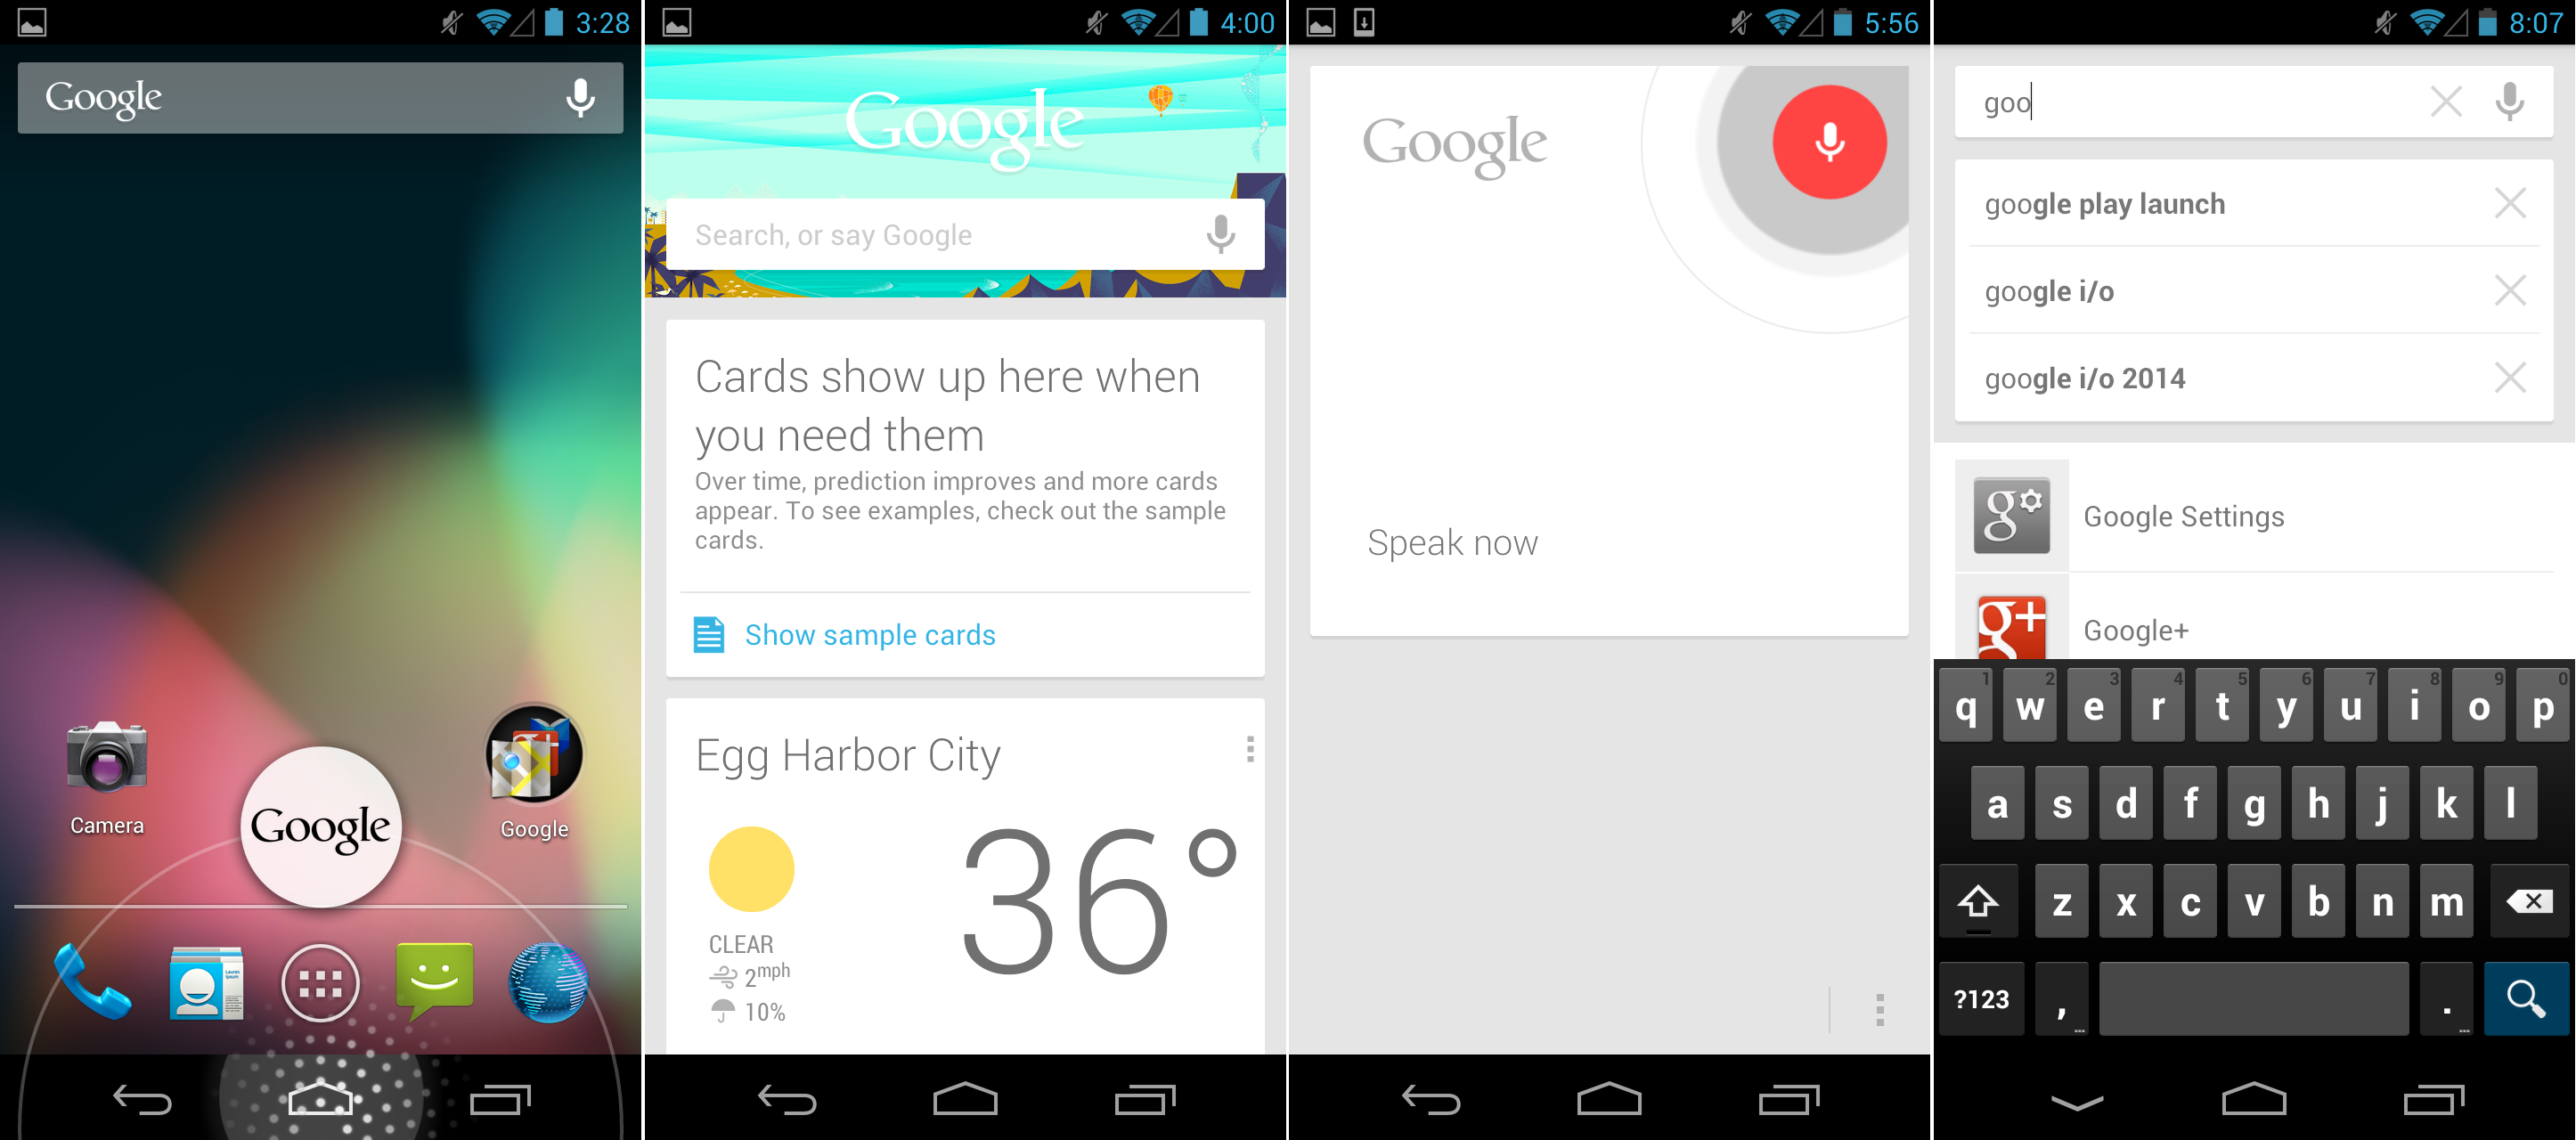 The new Google Search app, with Google Now cards, voice search, and text search.